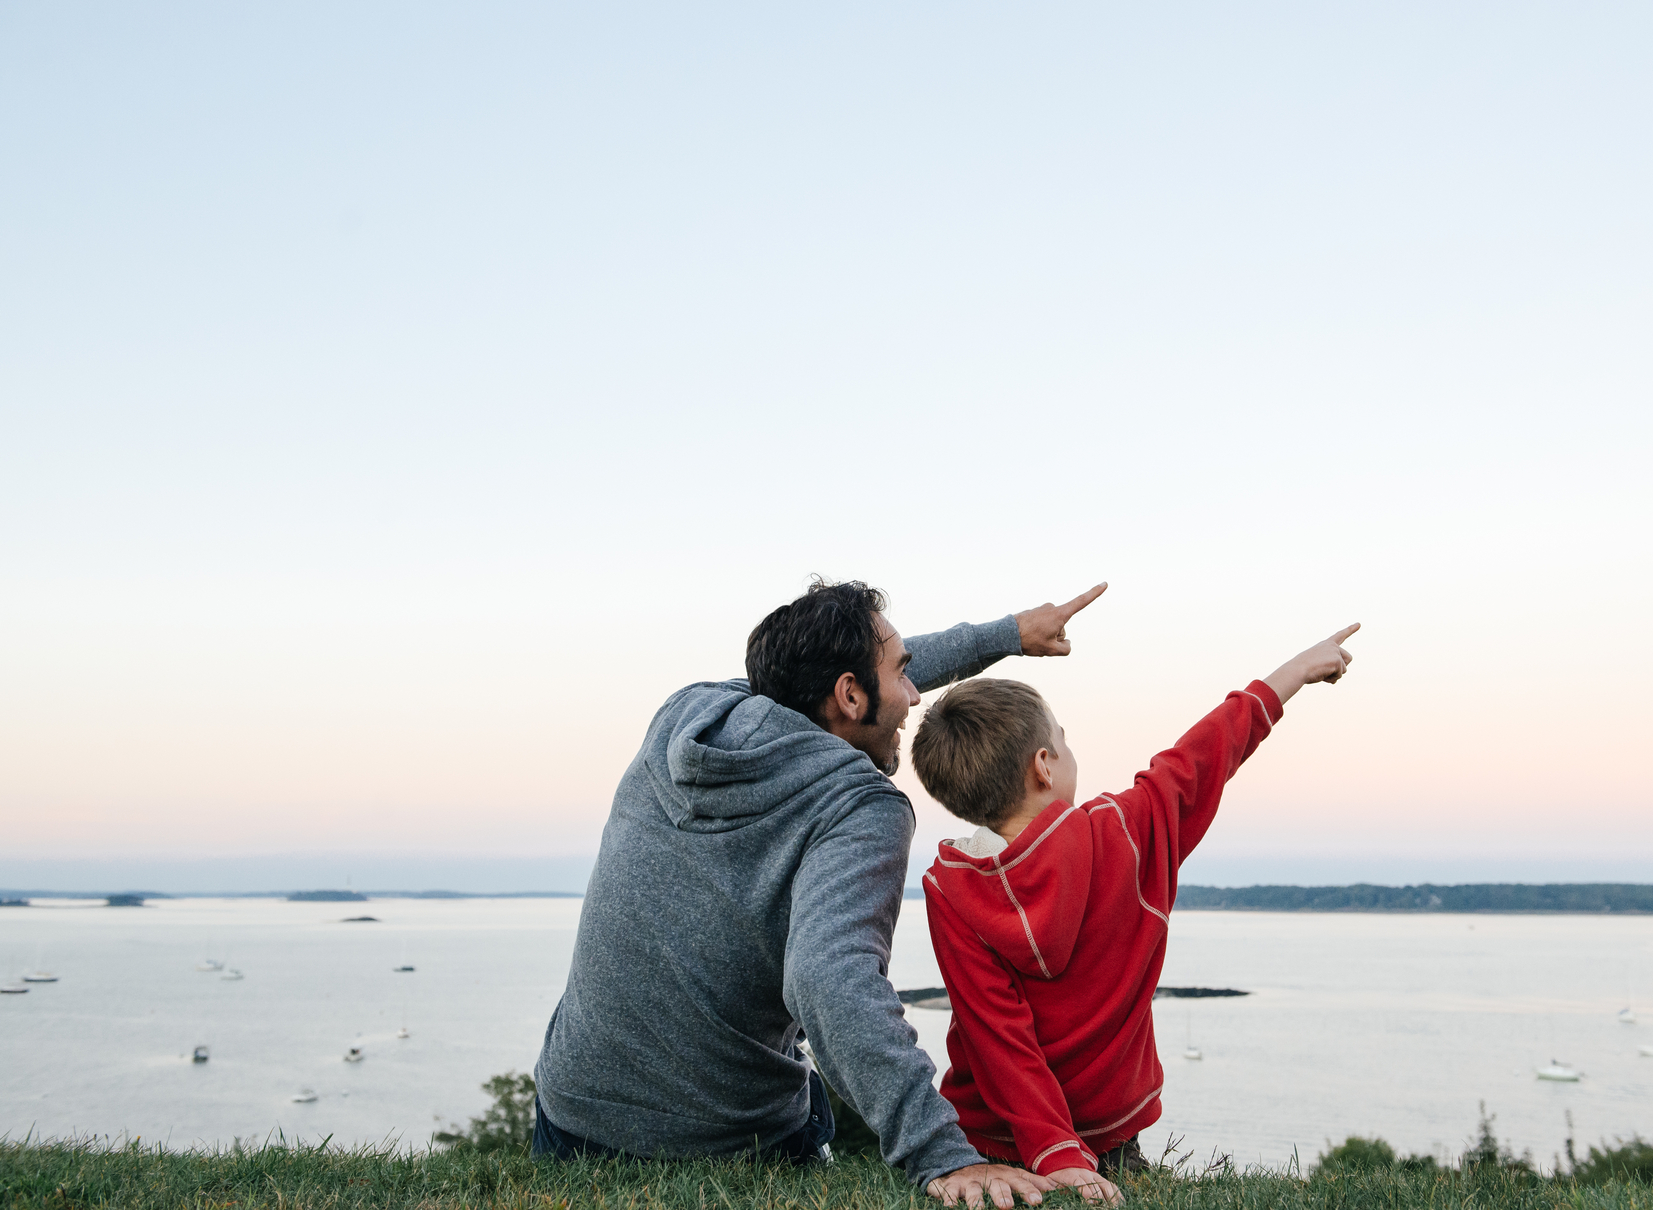 Family Fun Month Getaways: Vacation Ideas Everyone Will Love